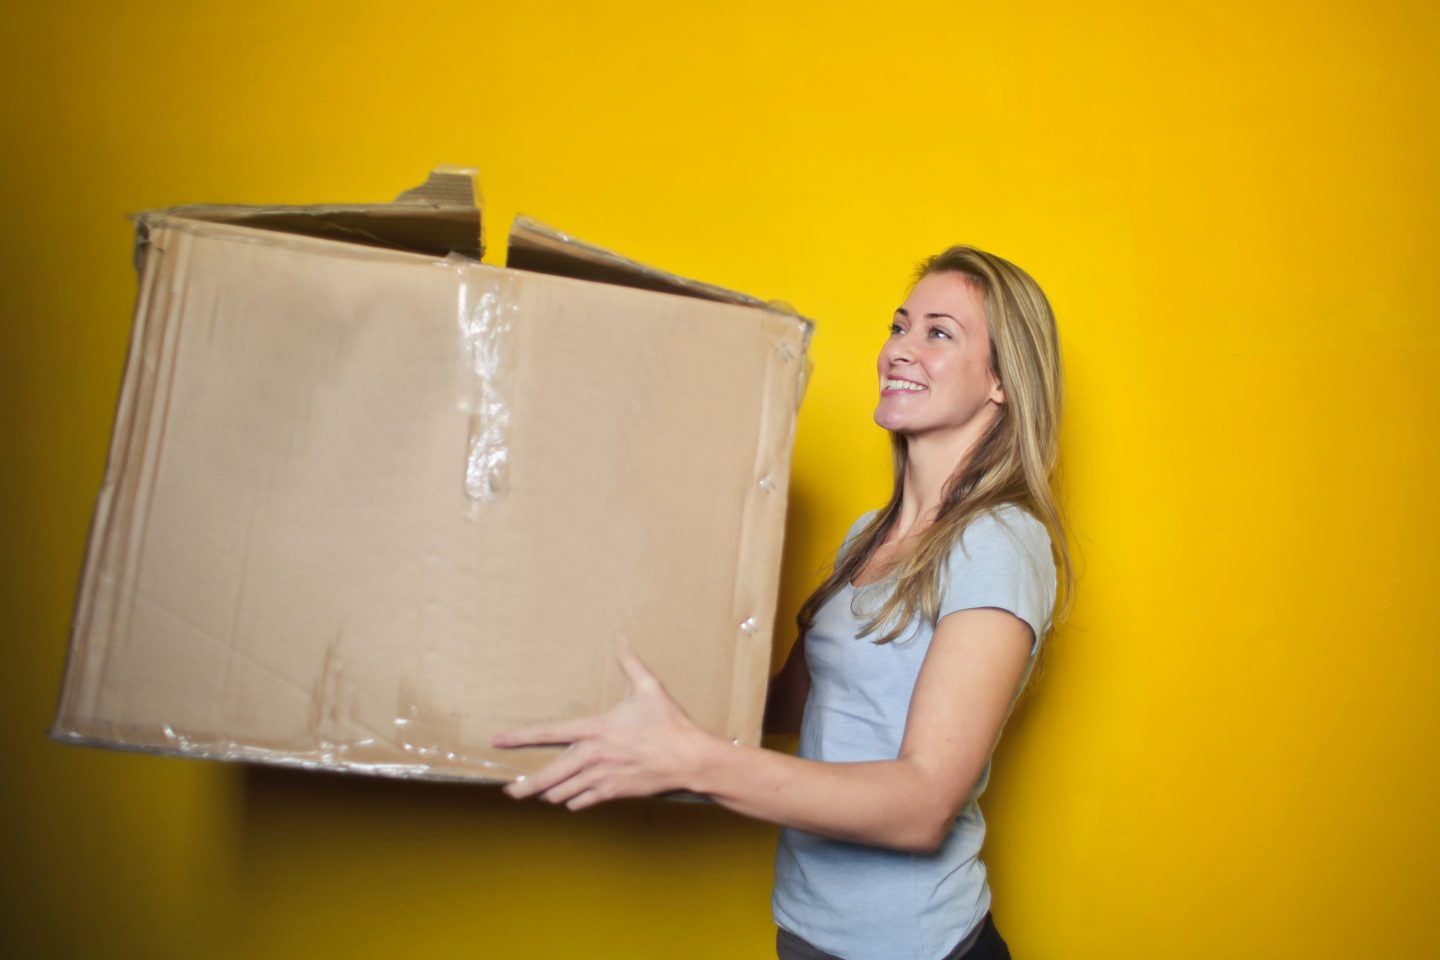 Do You Have to Waste Food when Packing for a Move?